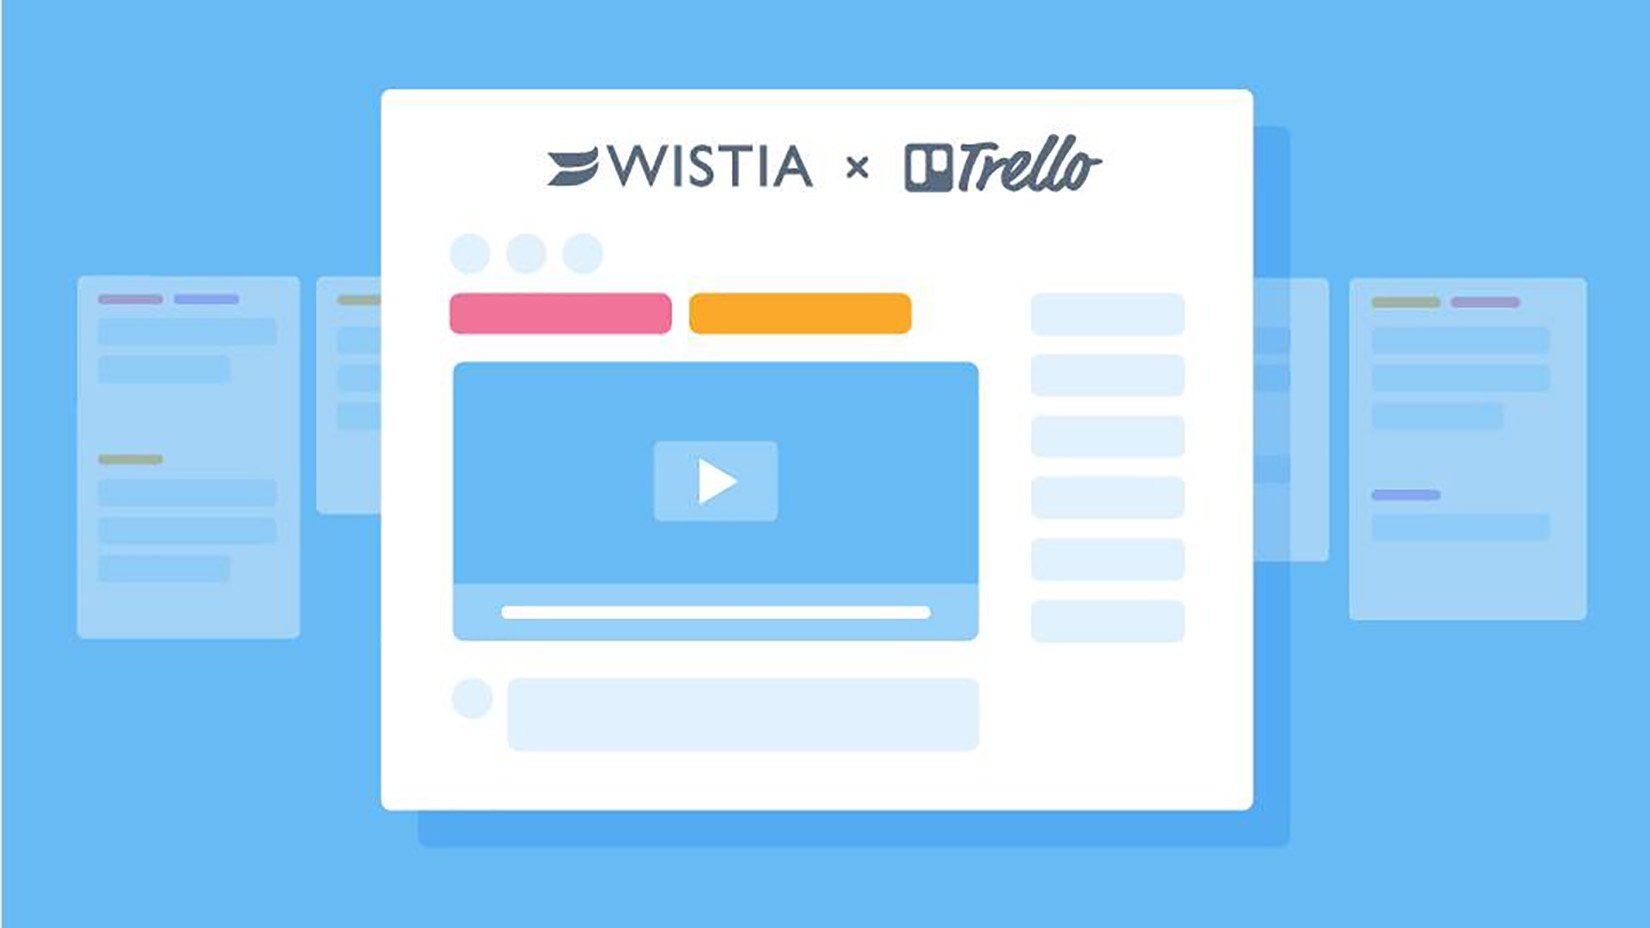 Wistia_Trello_Power_Up_v3